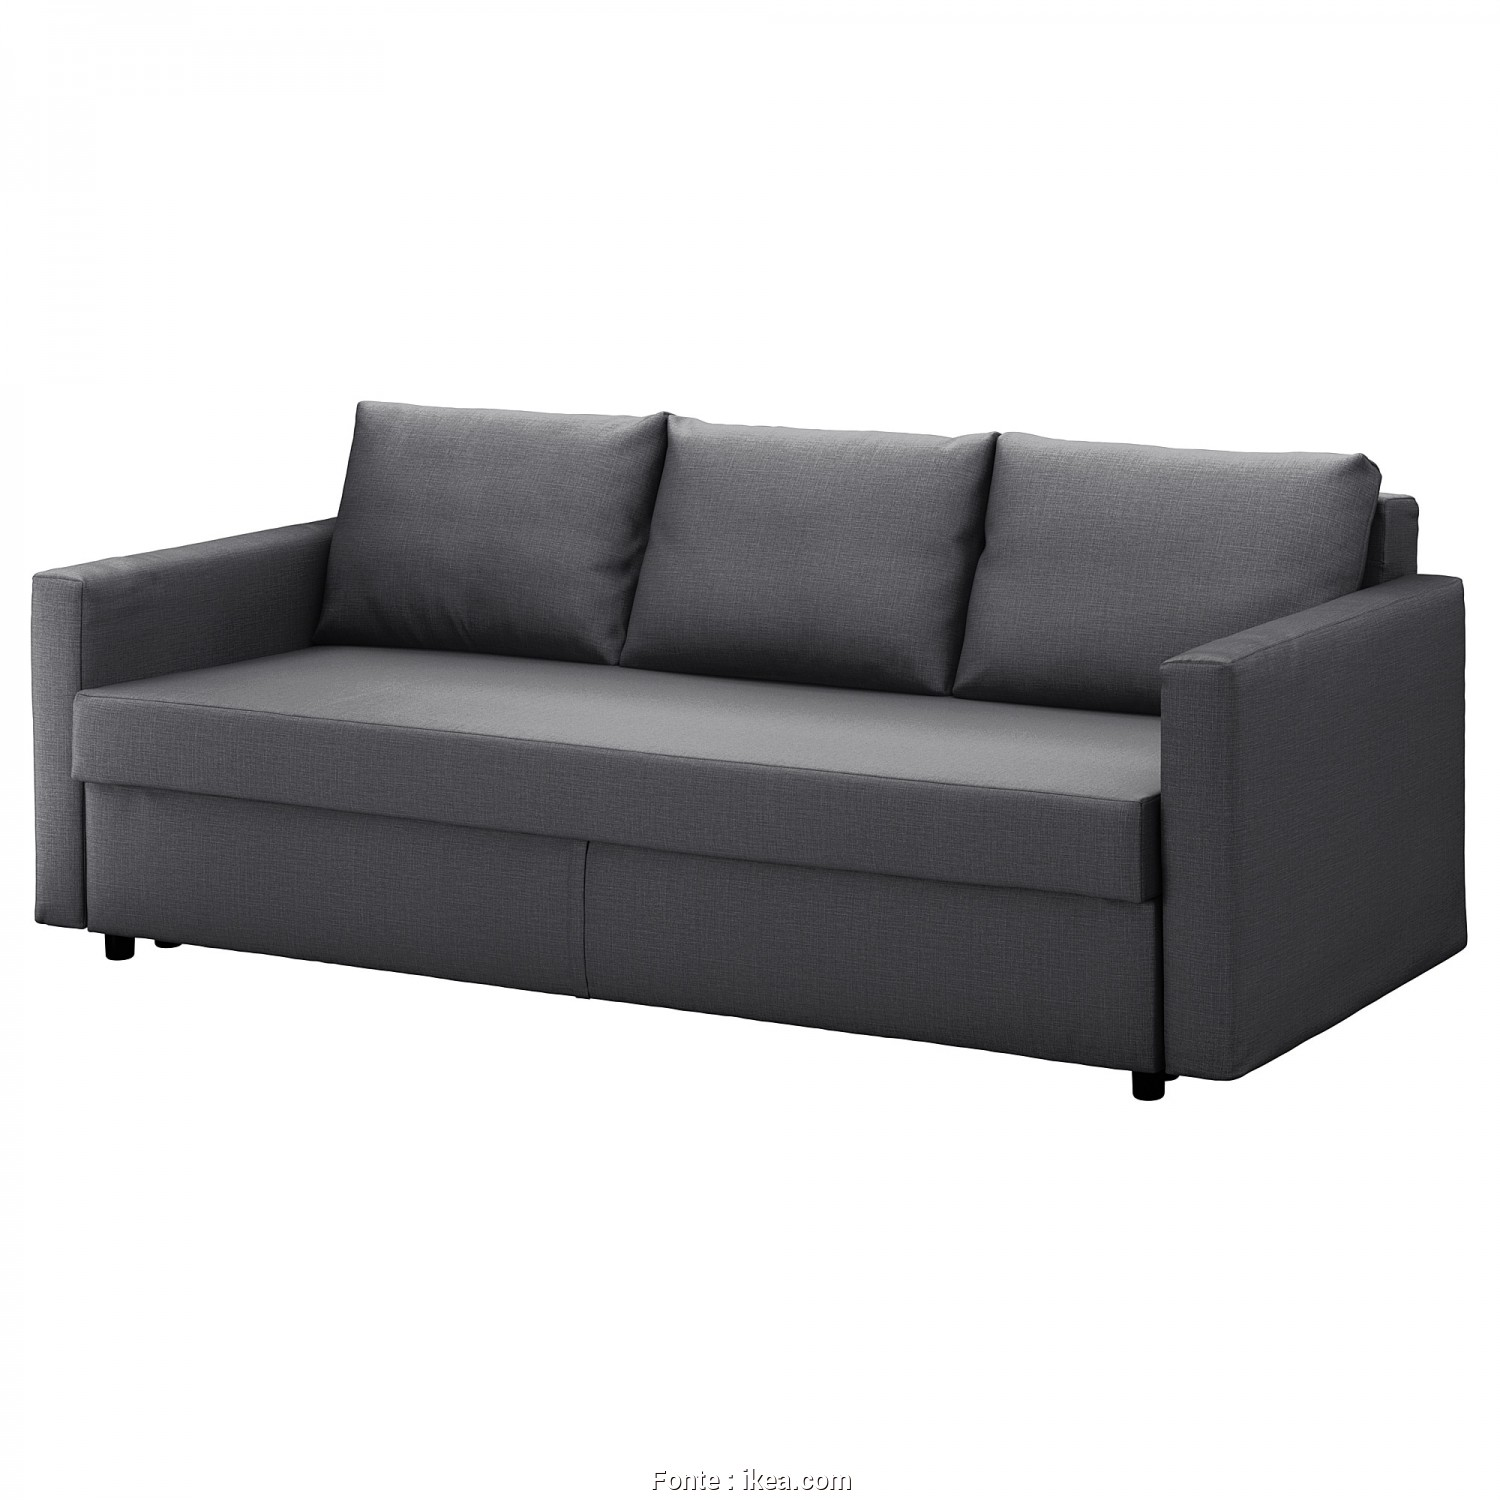 Futon Ikea Catalogo, Bella IKEA FRIHETEN Three-Seat Sofa-Bed Readily Converts Into A Bed